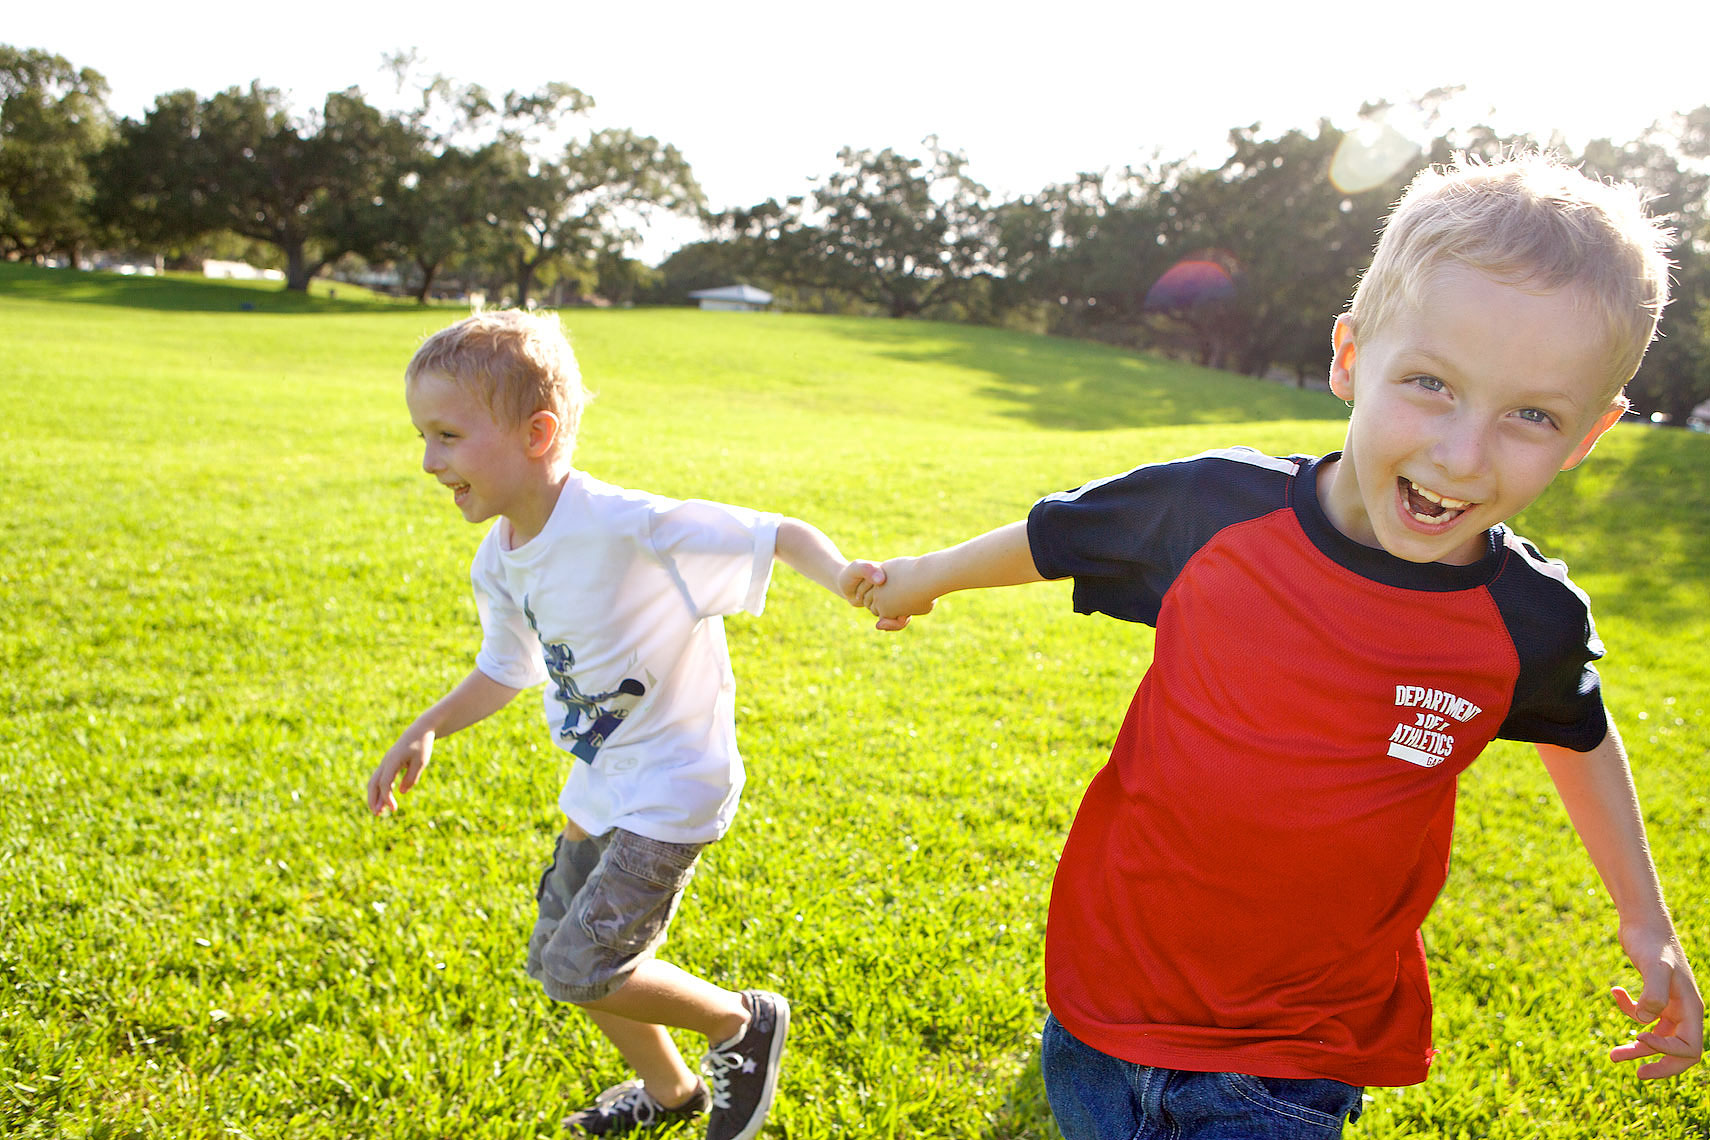 Robert-Holland_2819_twin boys running on grass in park, holding hands, laughing, Fort Lauderdale, Florida